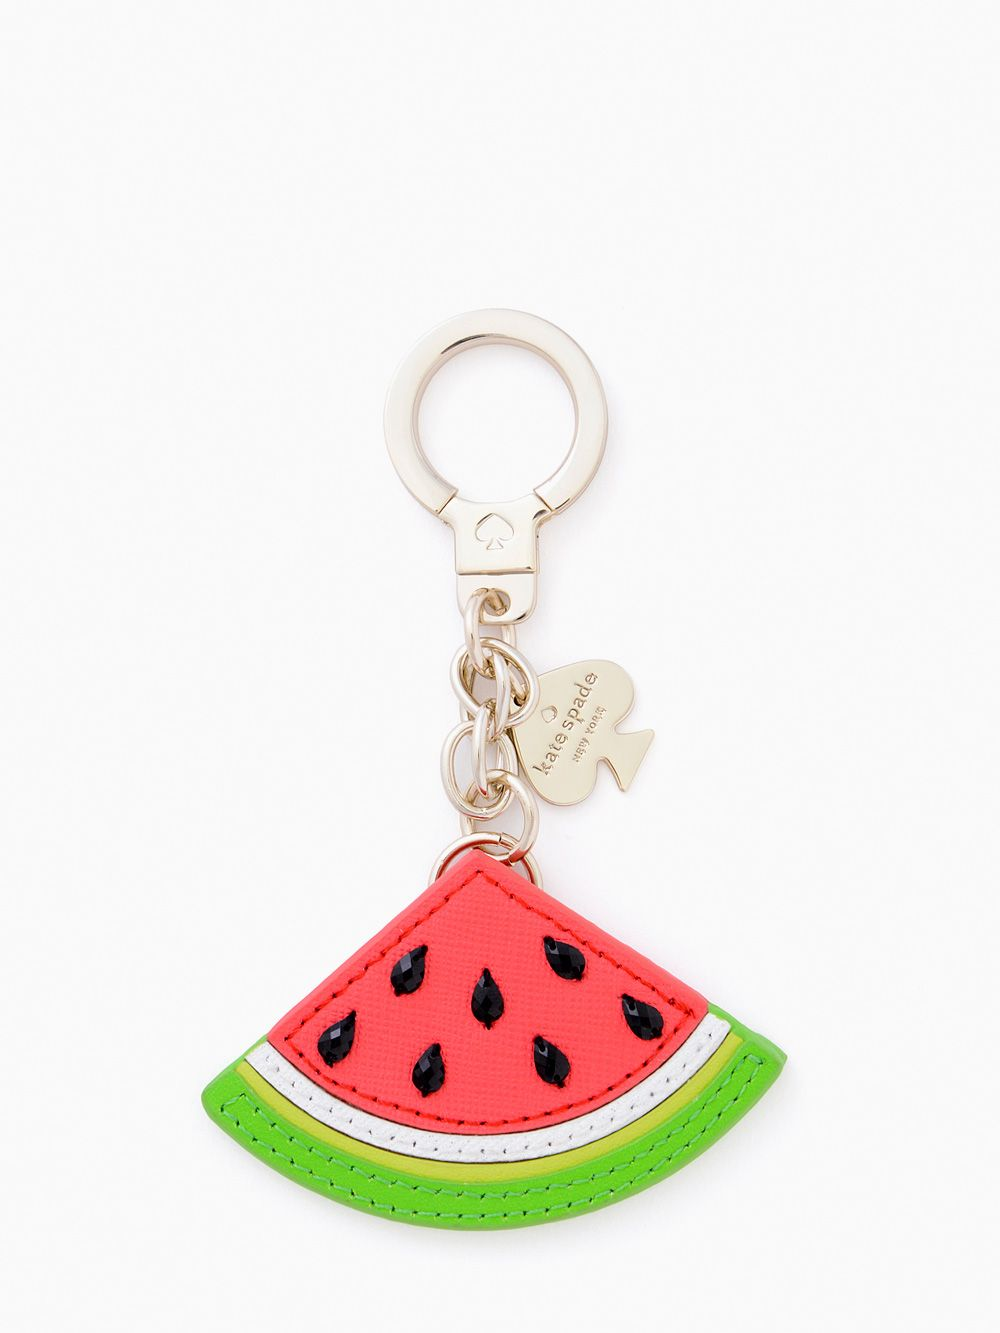 f9cba8fb1 KATE SPADE KEY FOBS LEATHER WATERMELON KEYCHAIN | Kate Spade | Kate ...